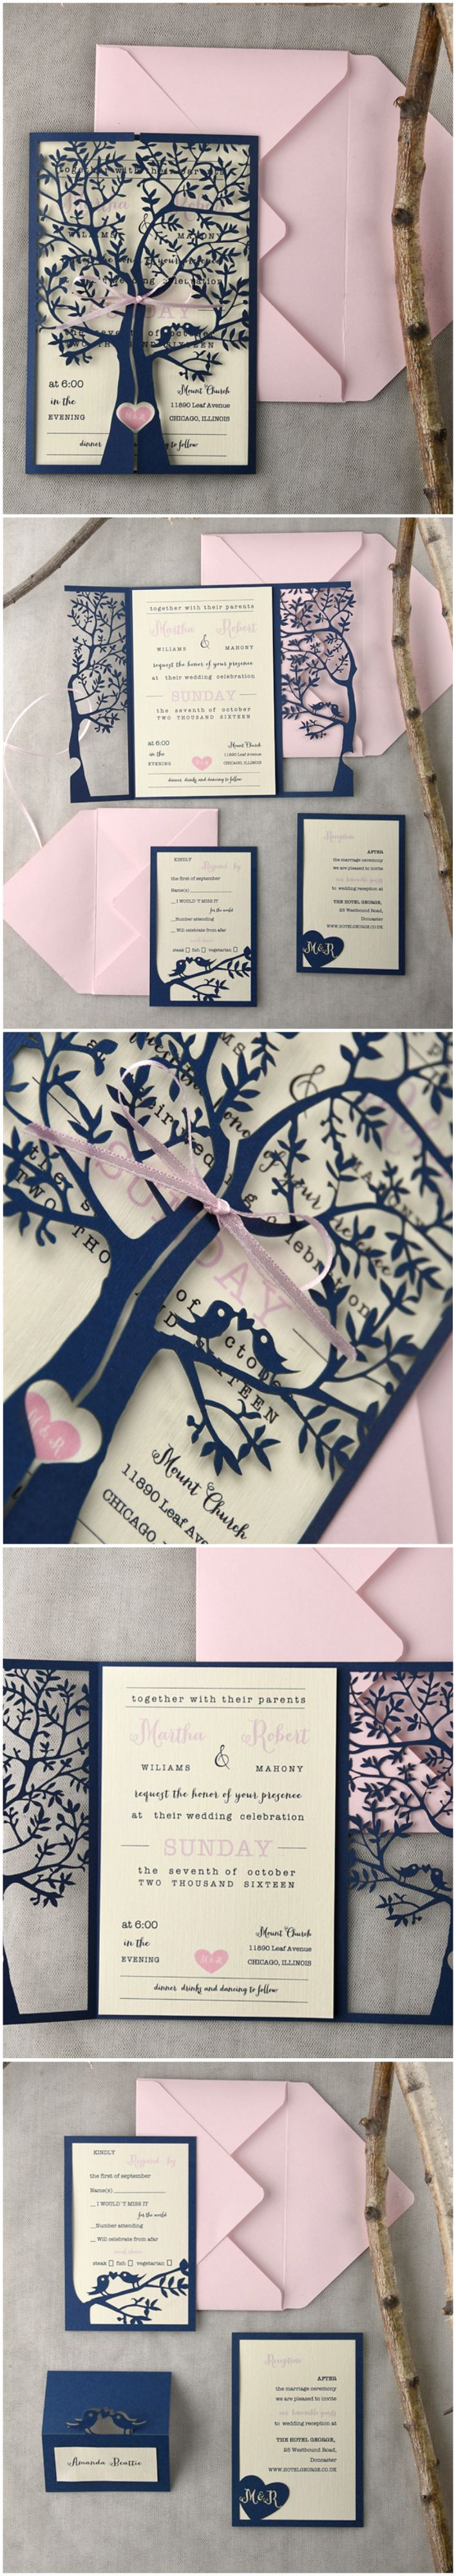 Pink & Navy Lasercut Wedding Invitations - Tree & Lovebirds #pink #navy #weddinginvitations #elegant #romantic #unique #lasercut